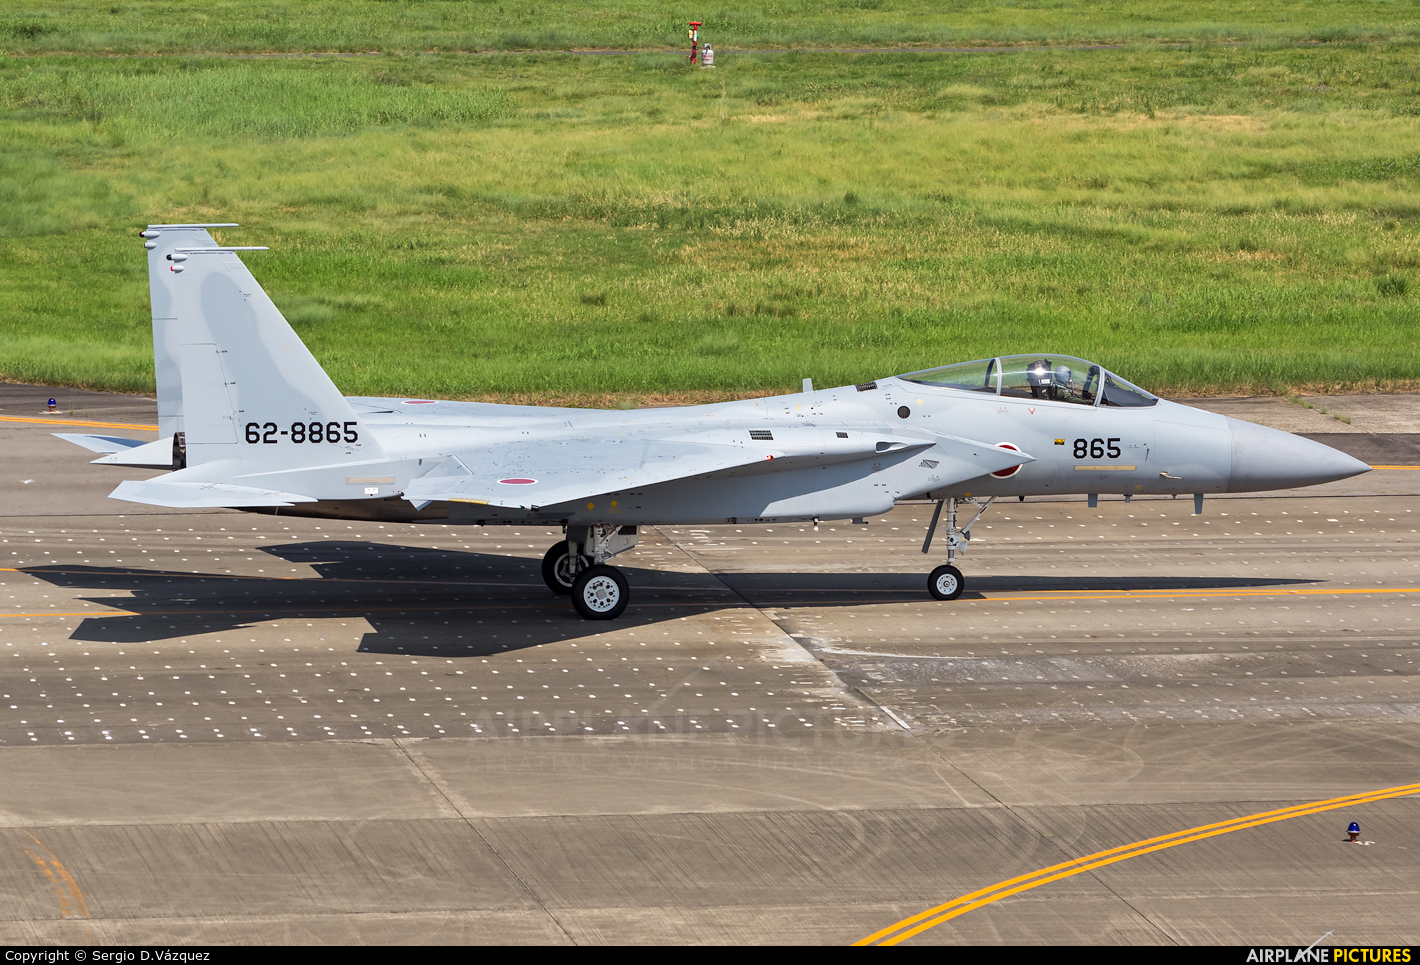 Japan - Air Self Defence Force 62-8865 aircraft at Nagoya - Komaki AB